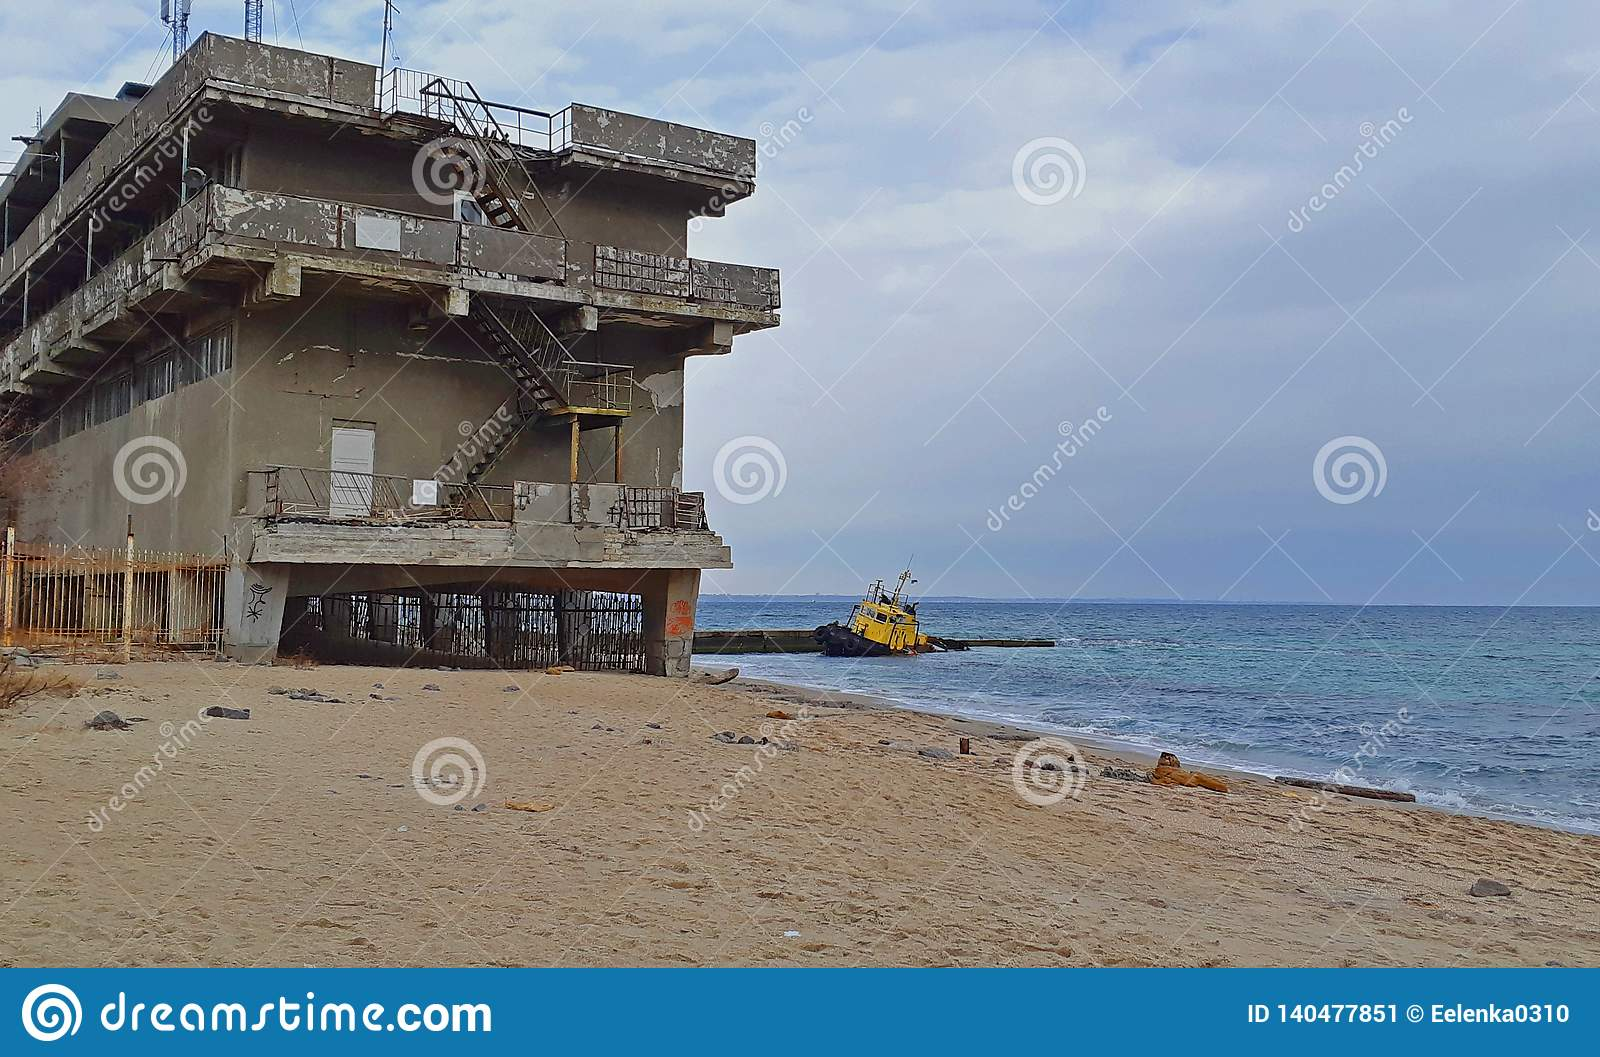 Old flooded towing ship and the abandoned building near the shore.Dramatic view of the flooded boat near the shore.